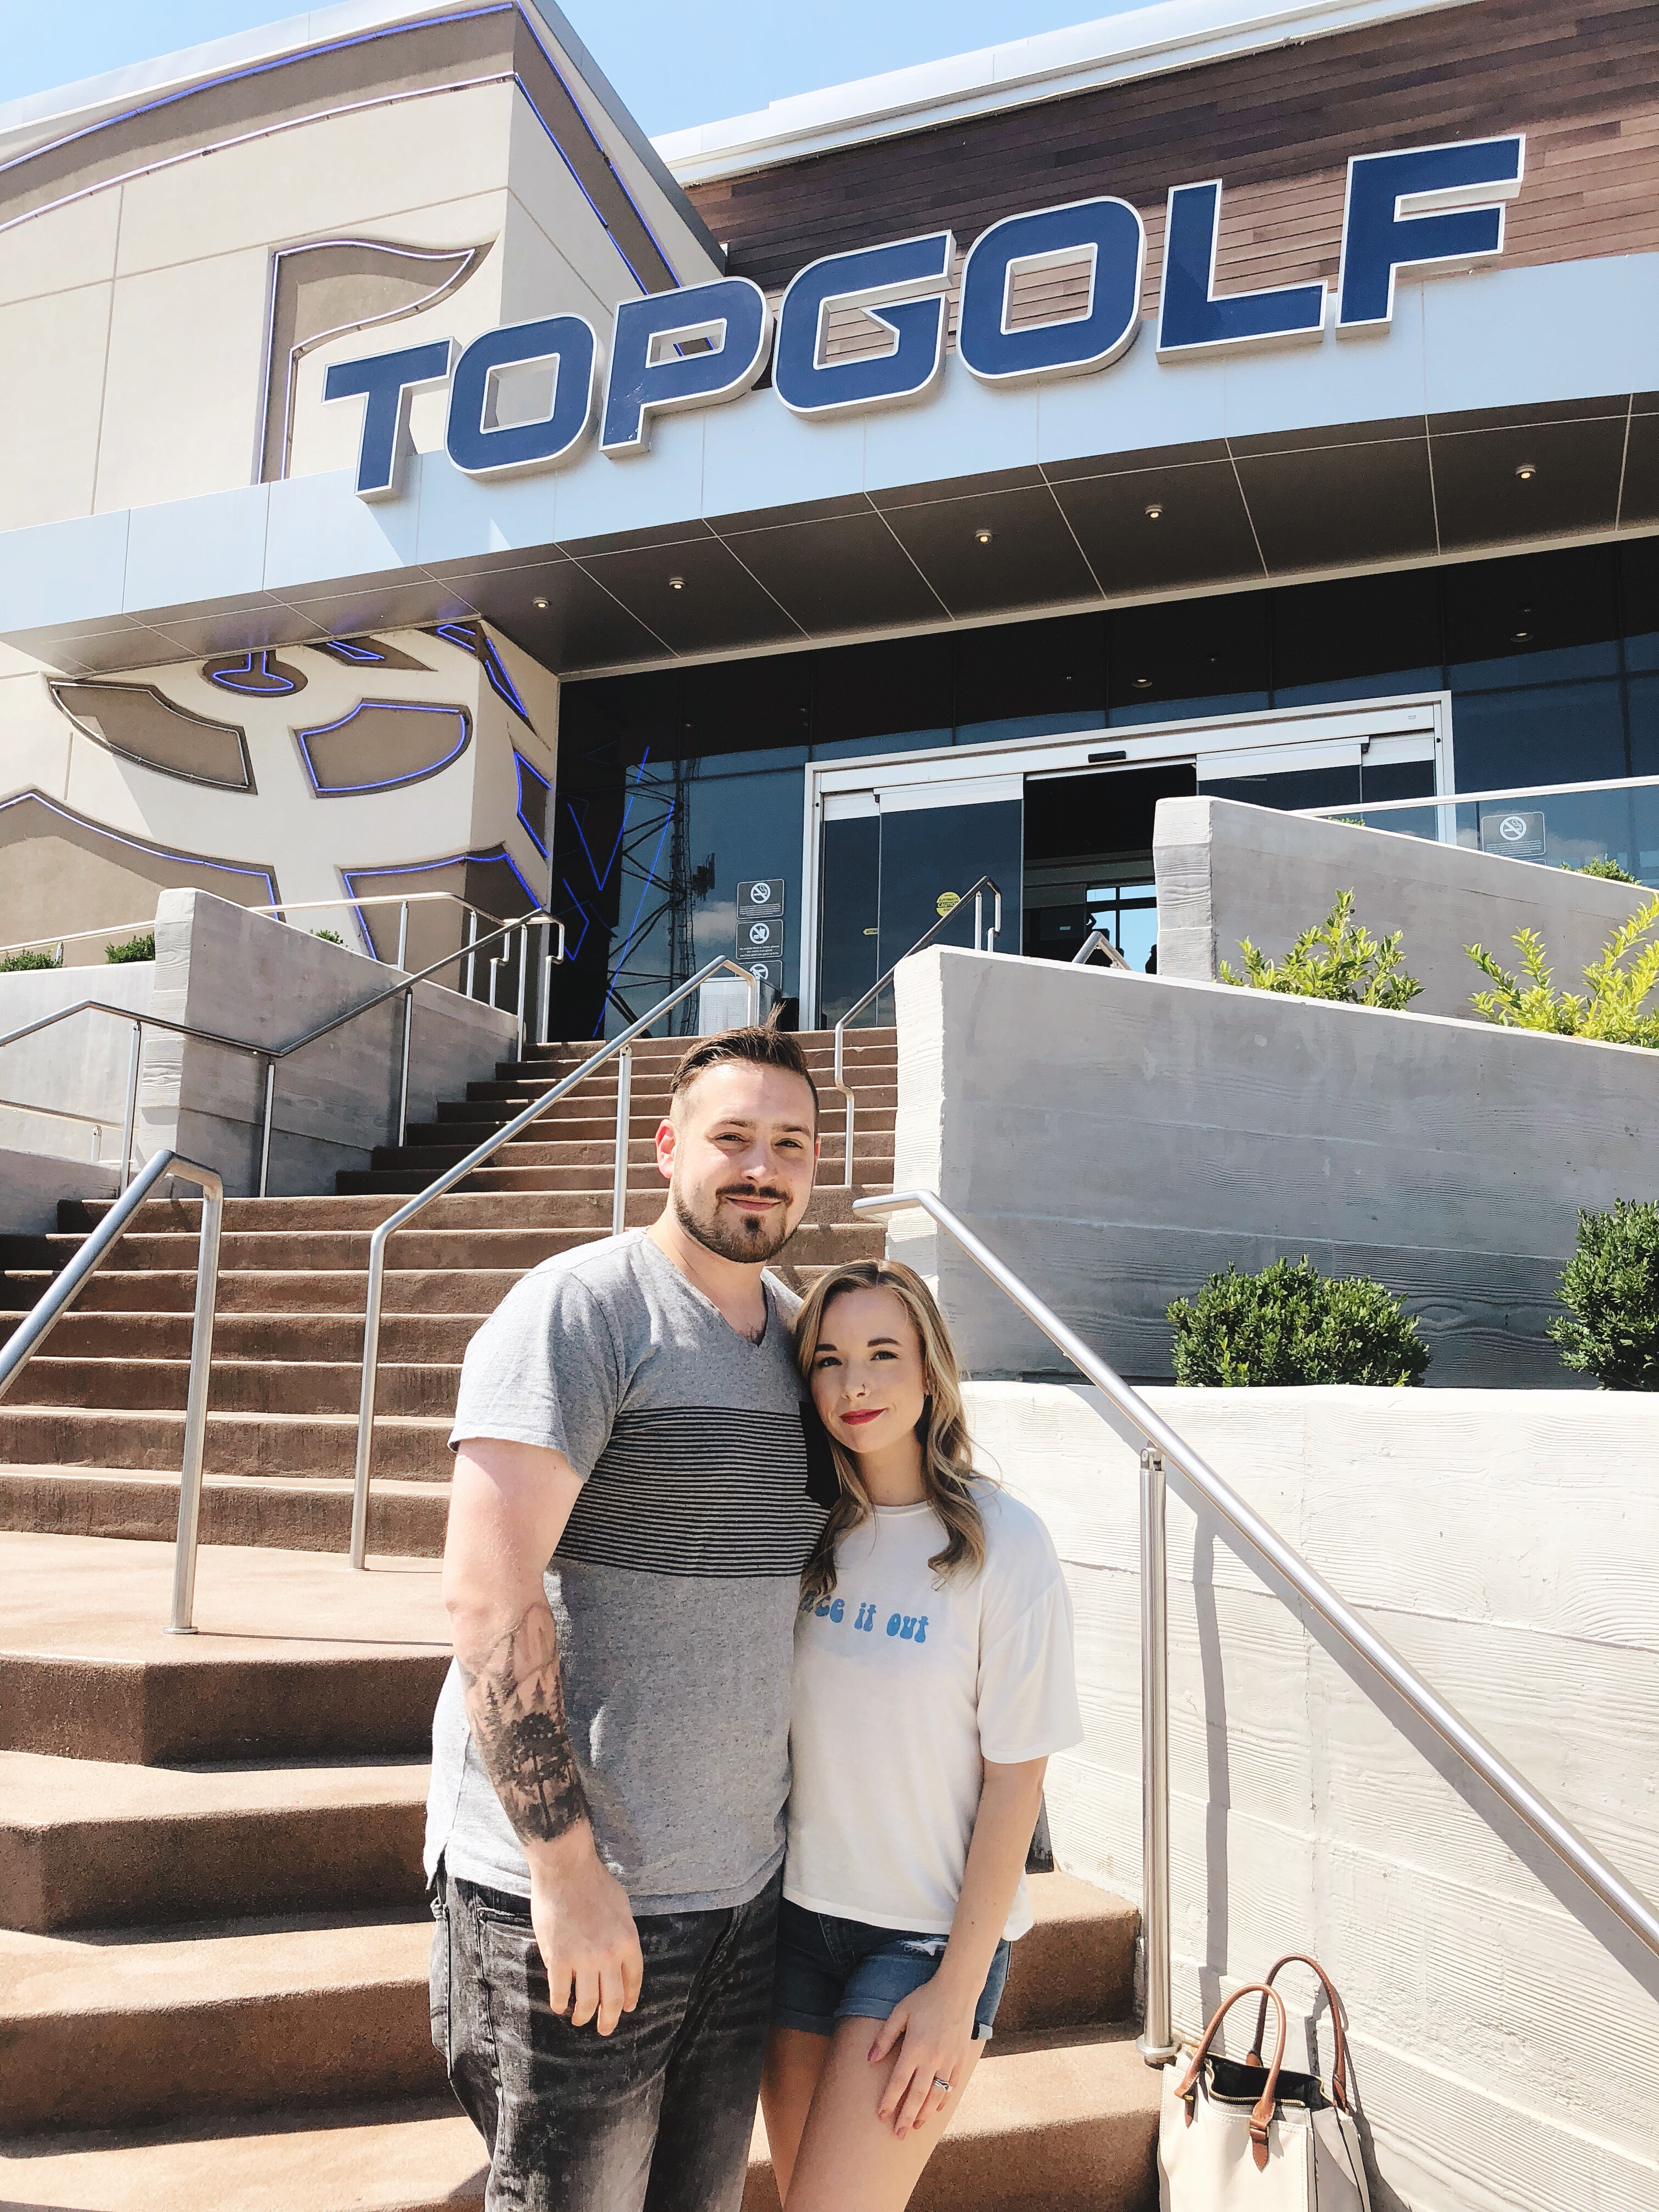 Nashville Travel Guide - Topgolf